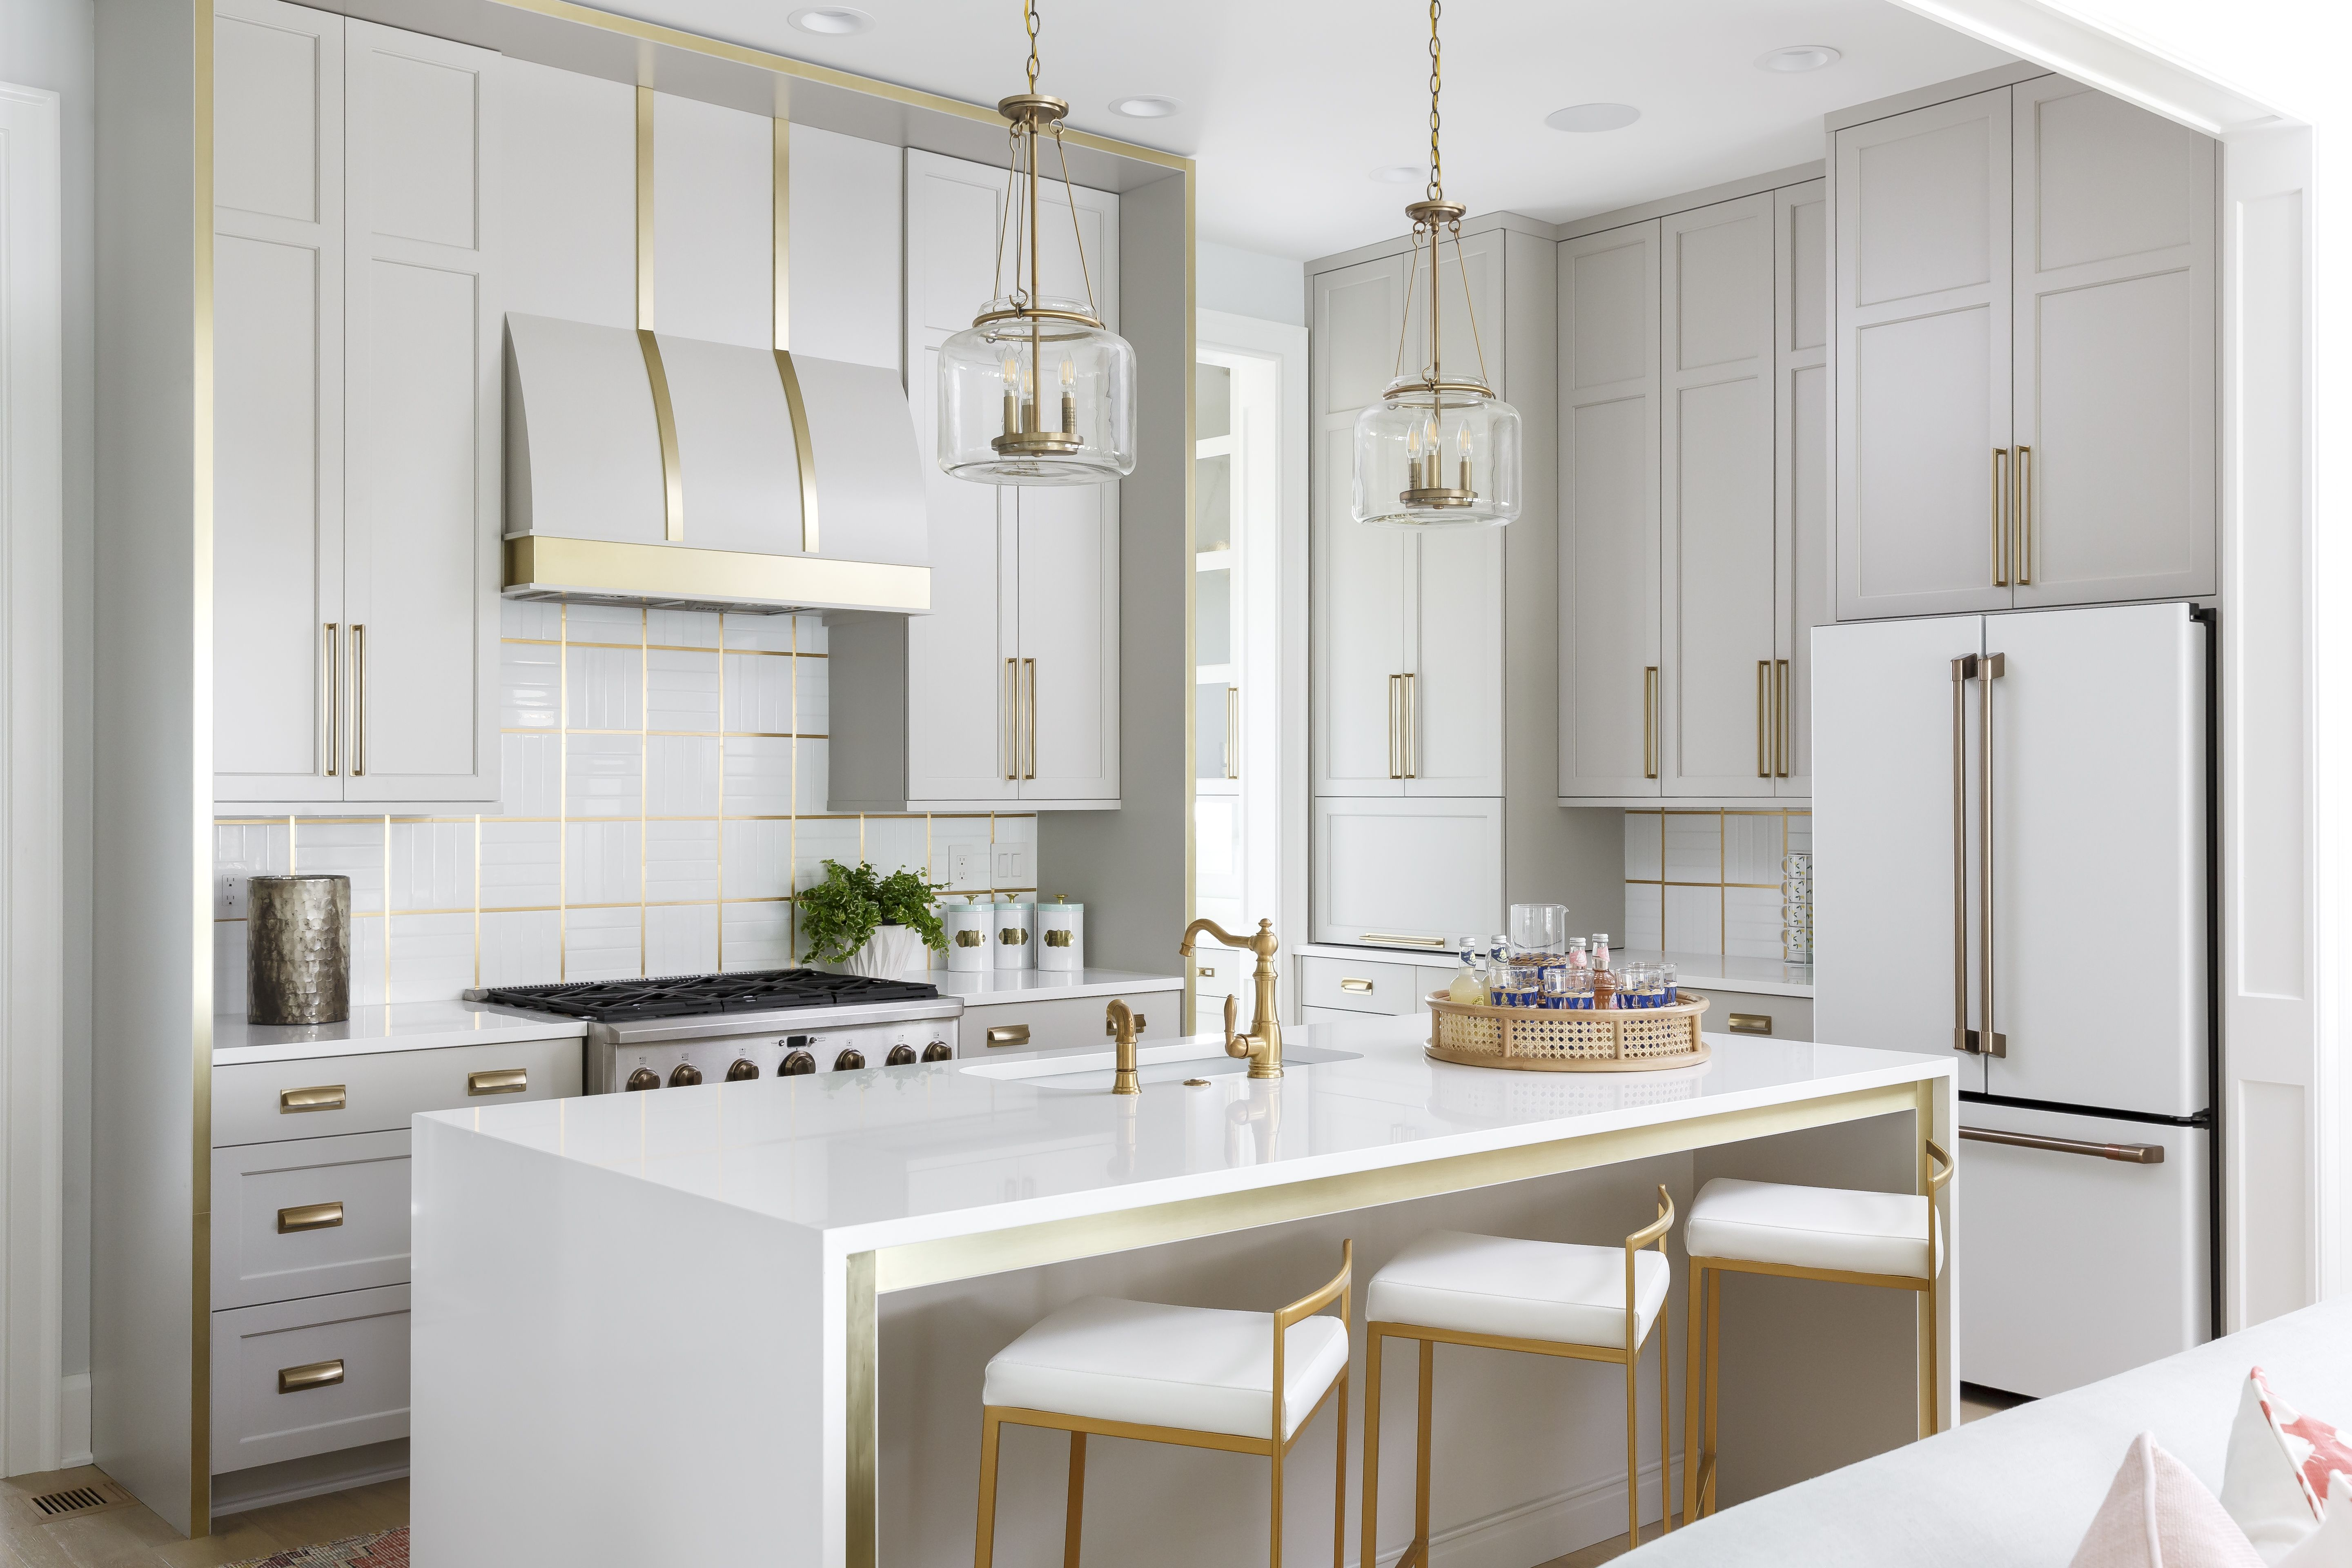 Palm Beach Rustic Gray Weatherstrong Outdoor Cabinetry Rustic Cabinets Cabinet Remodel Cabinetry